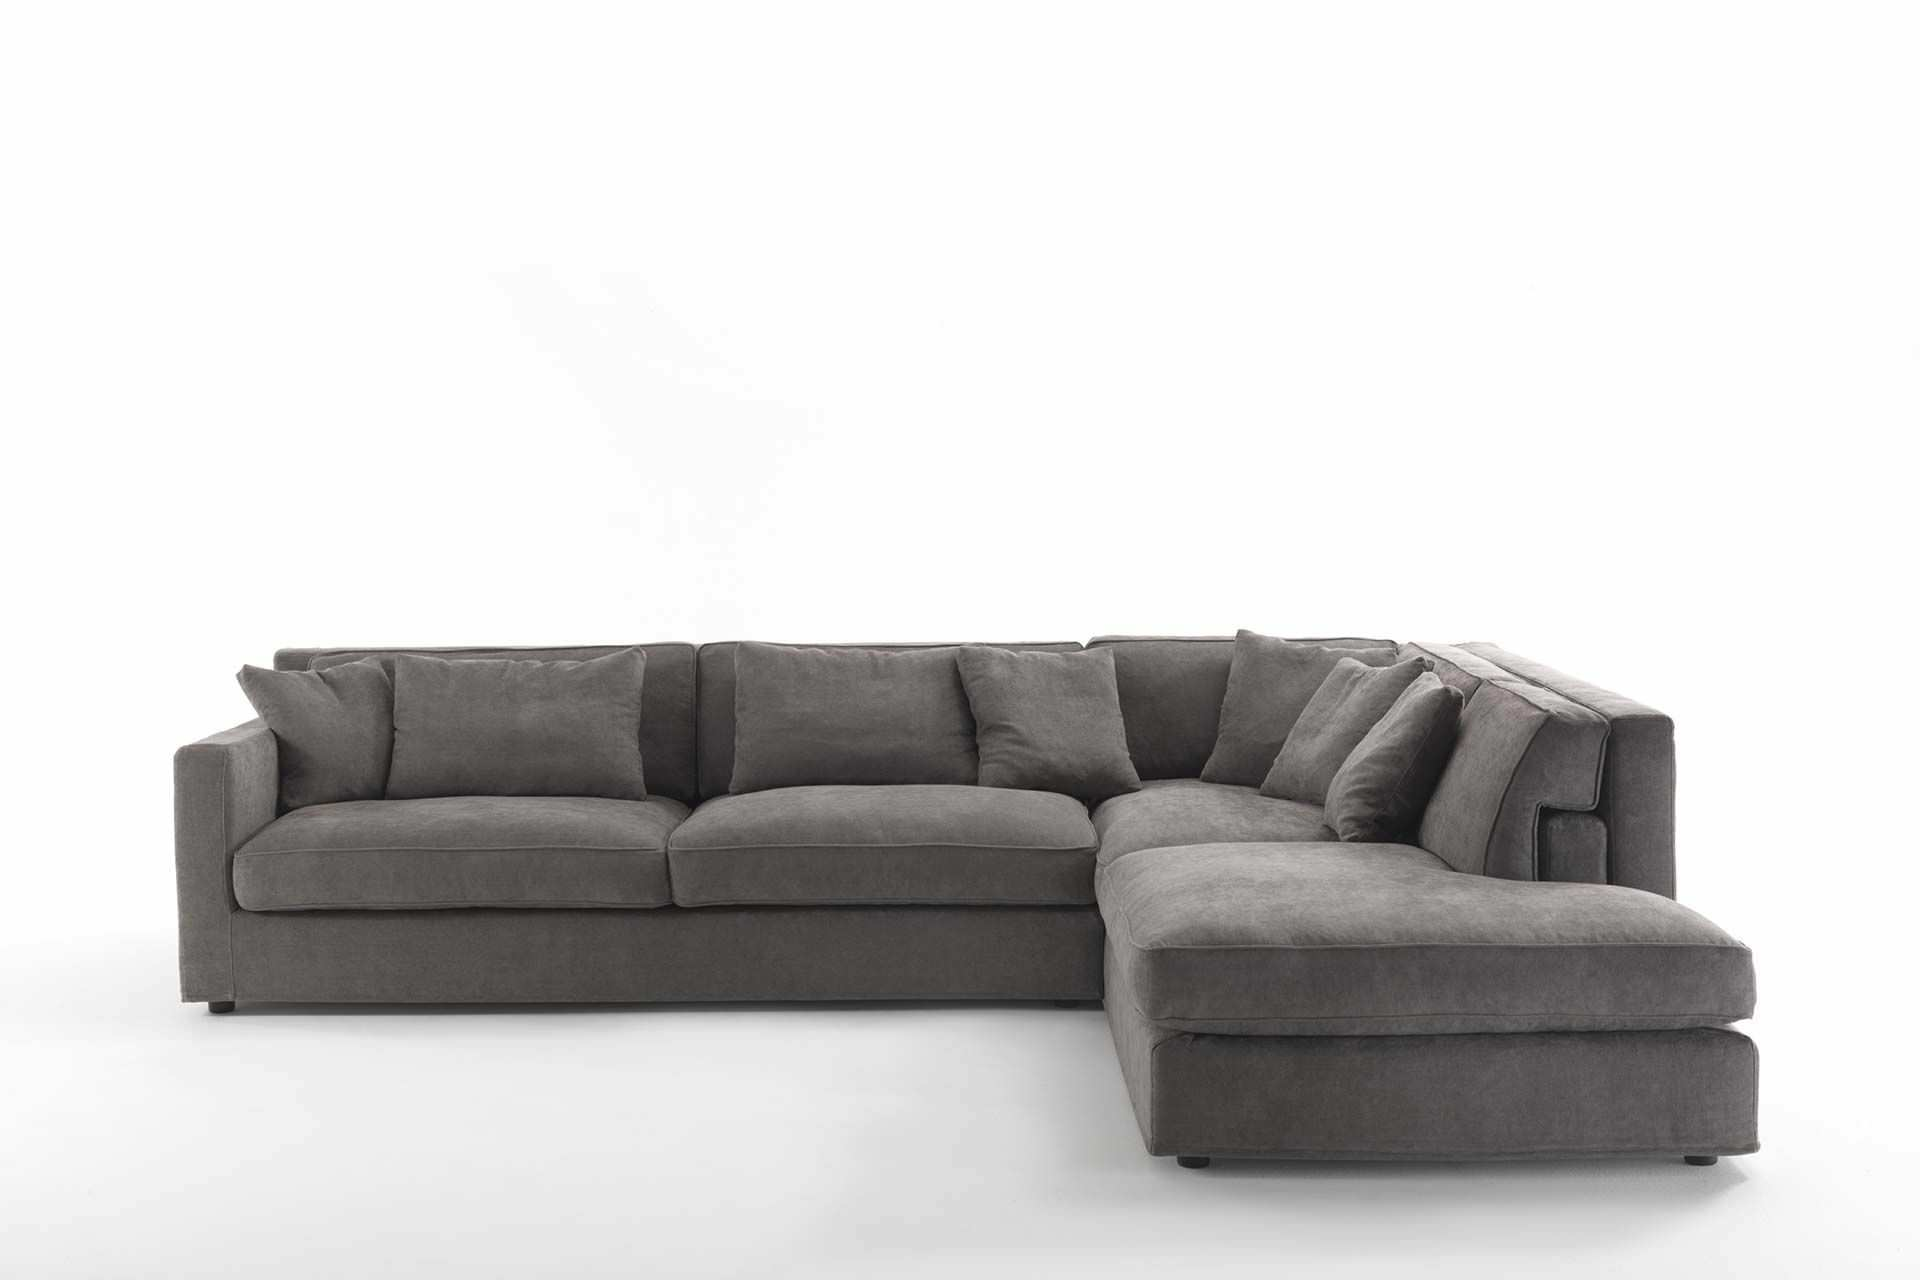 Modular sofa contemporary fabric leather JORDAN Frigerio